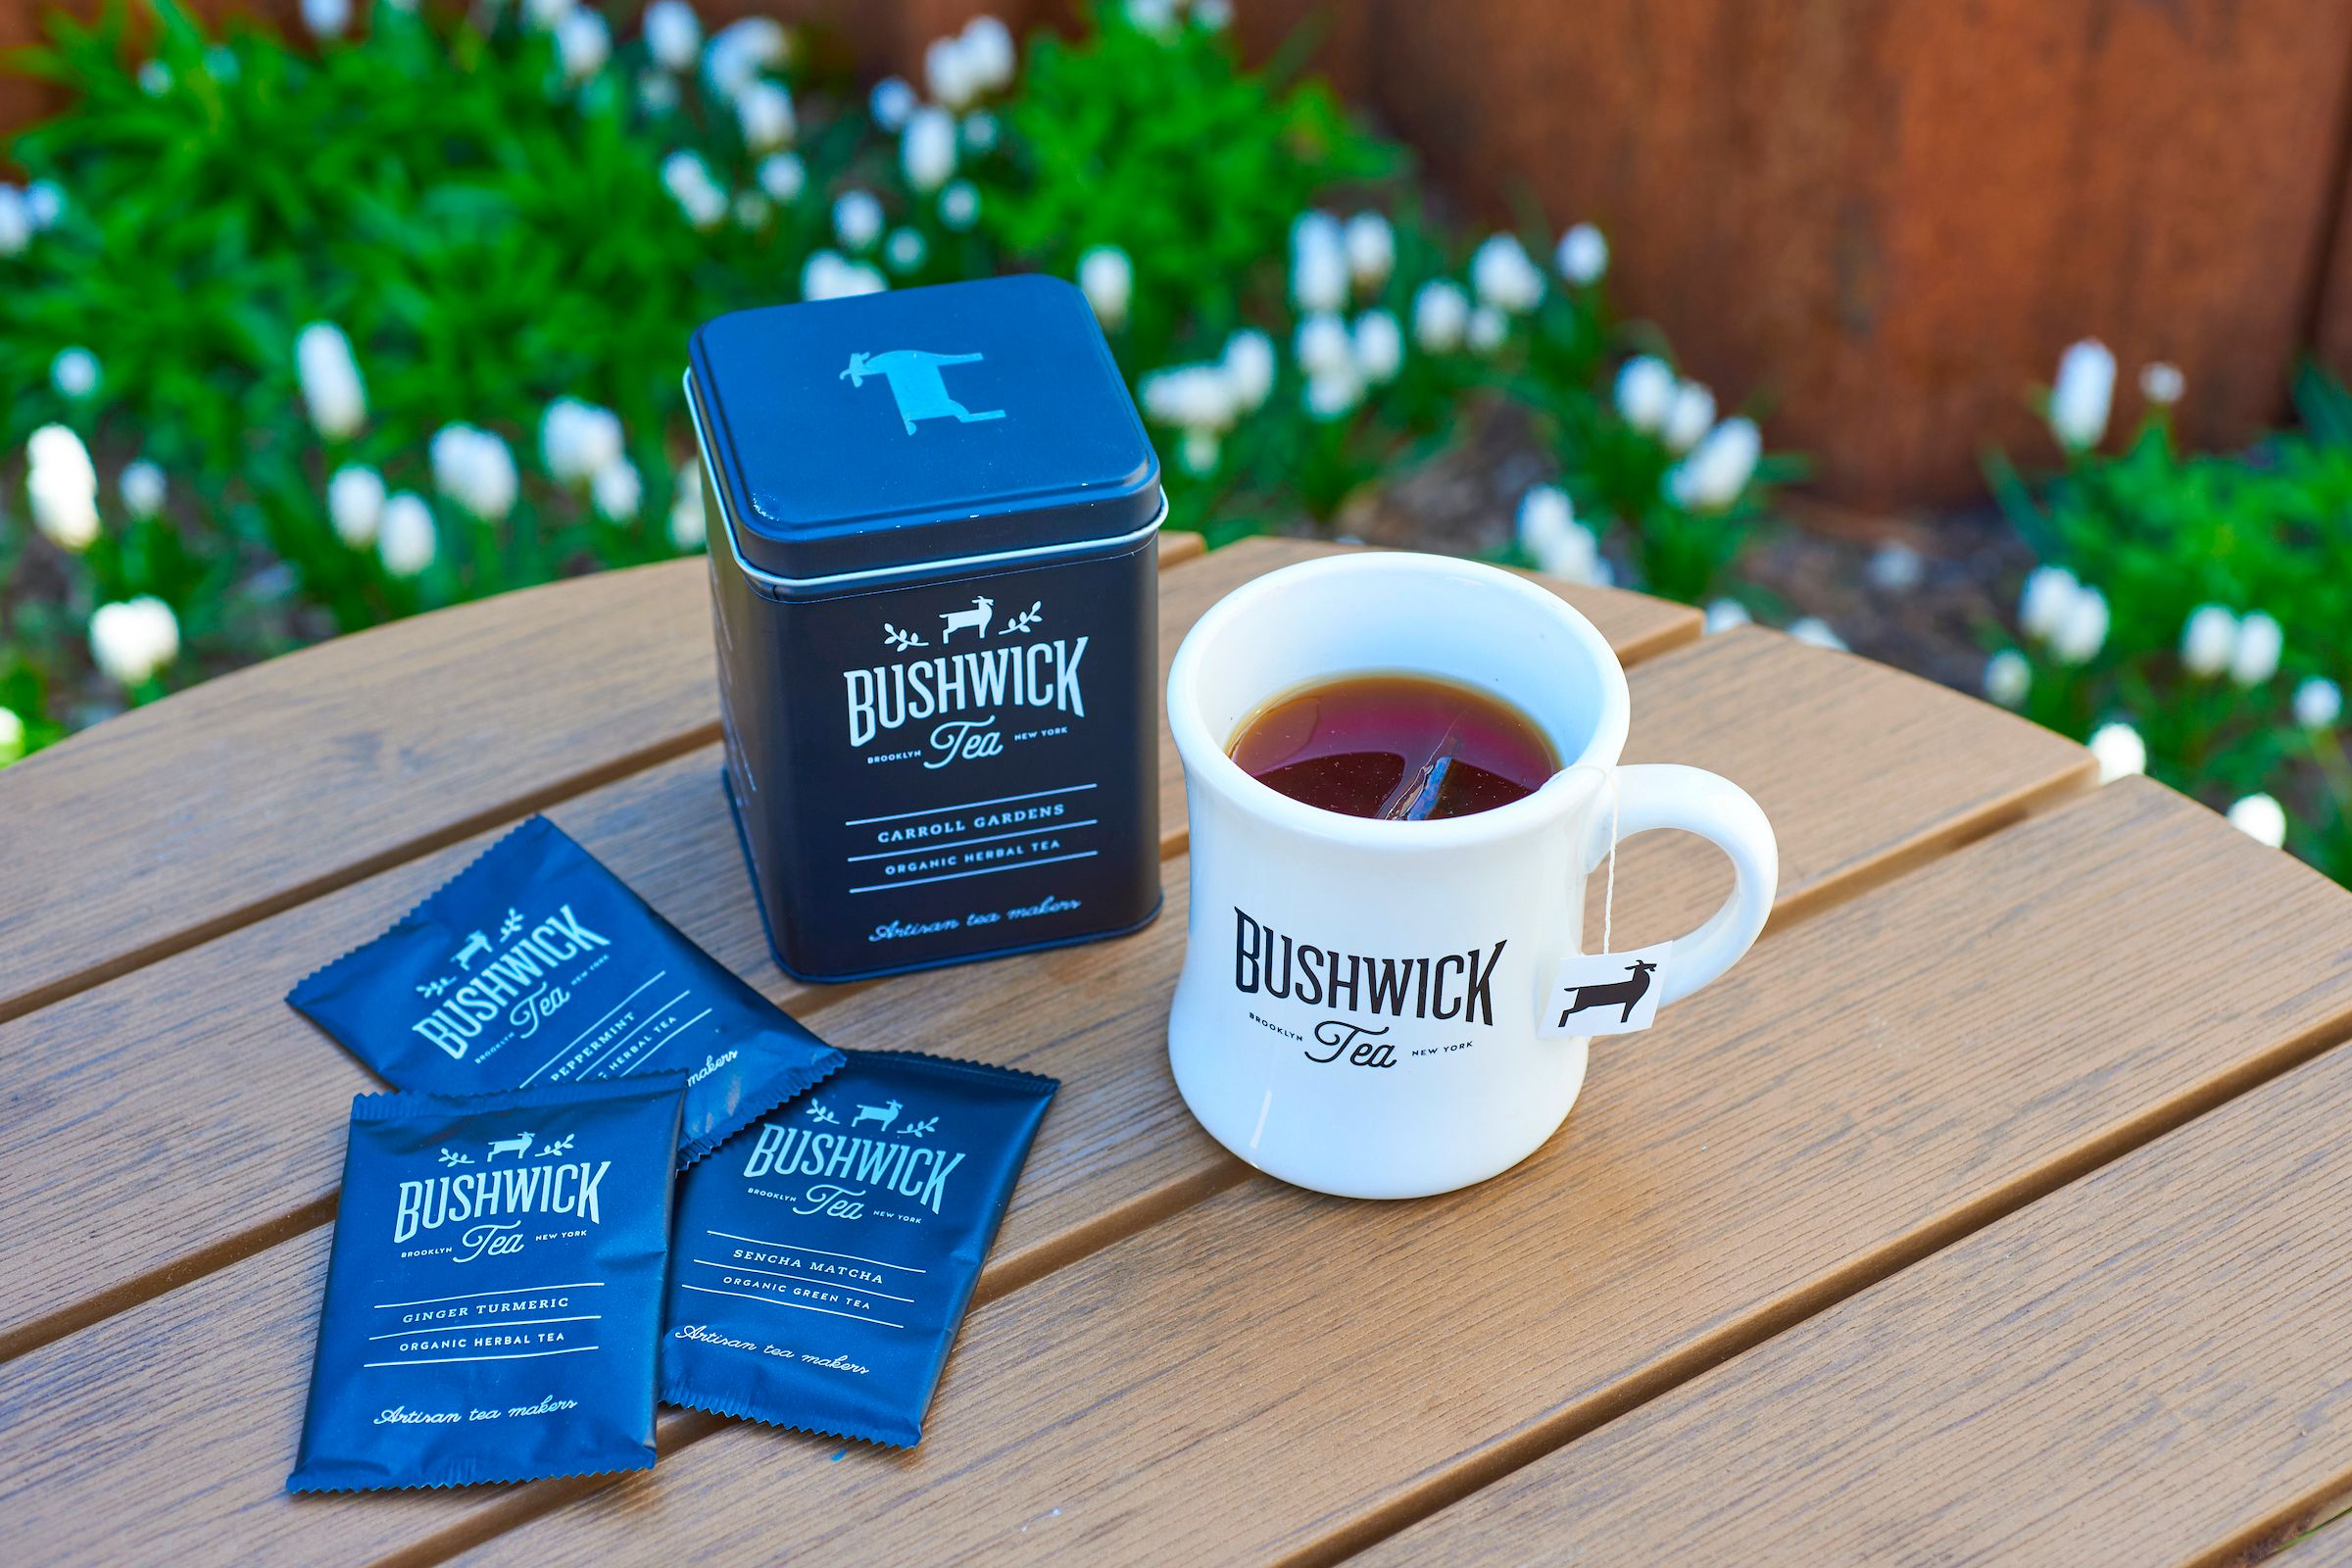 A blue canister sits on a wooden table next to blue tea bags and a white mug filled with tea